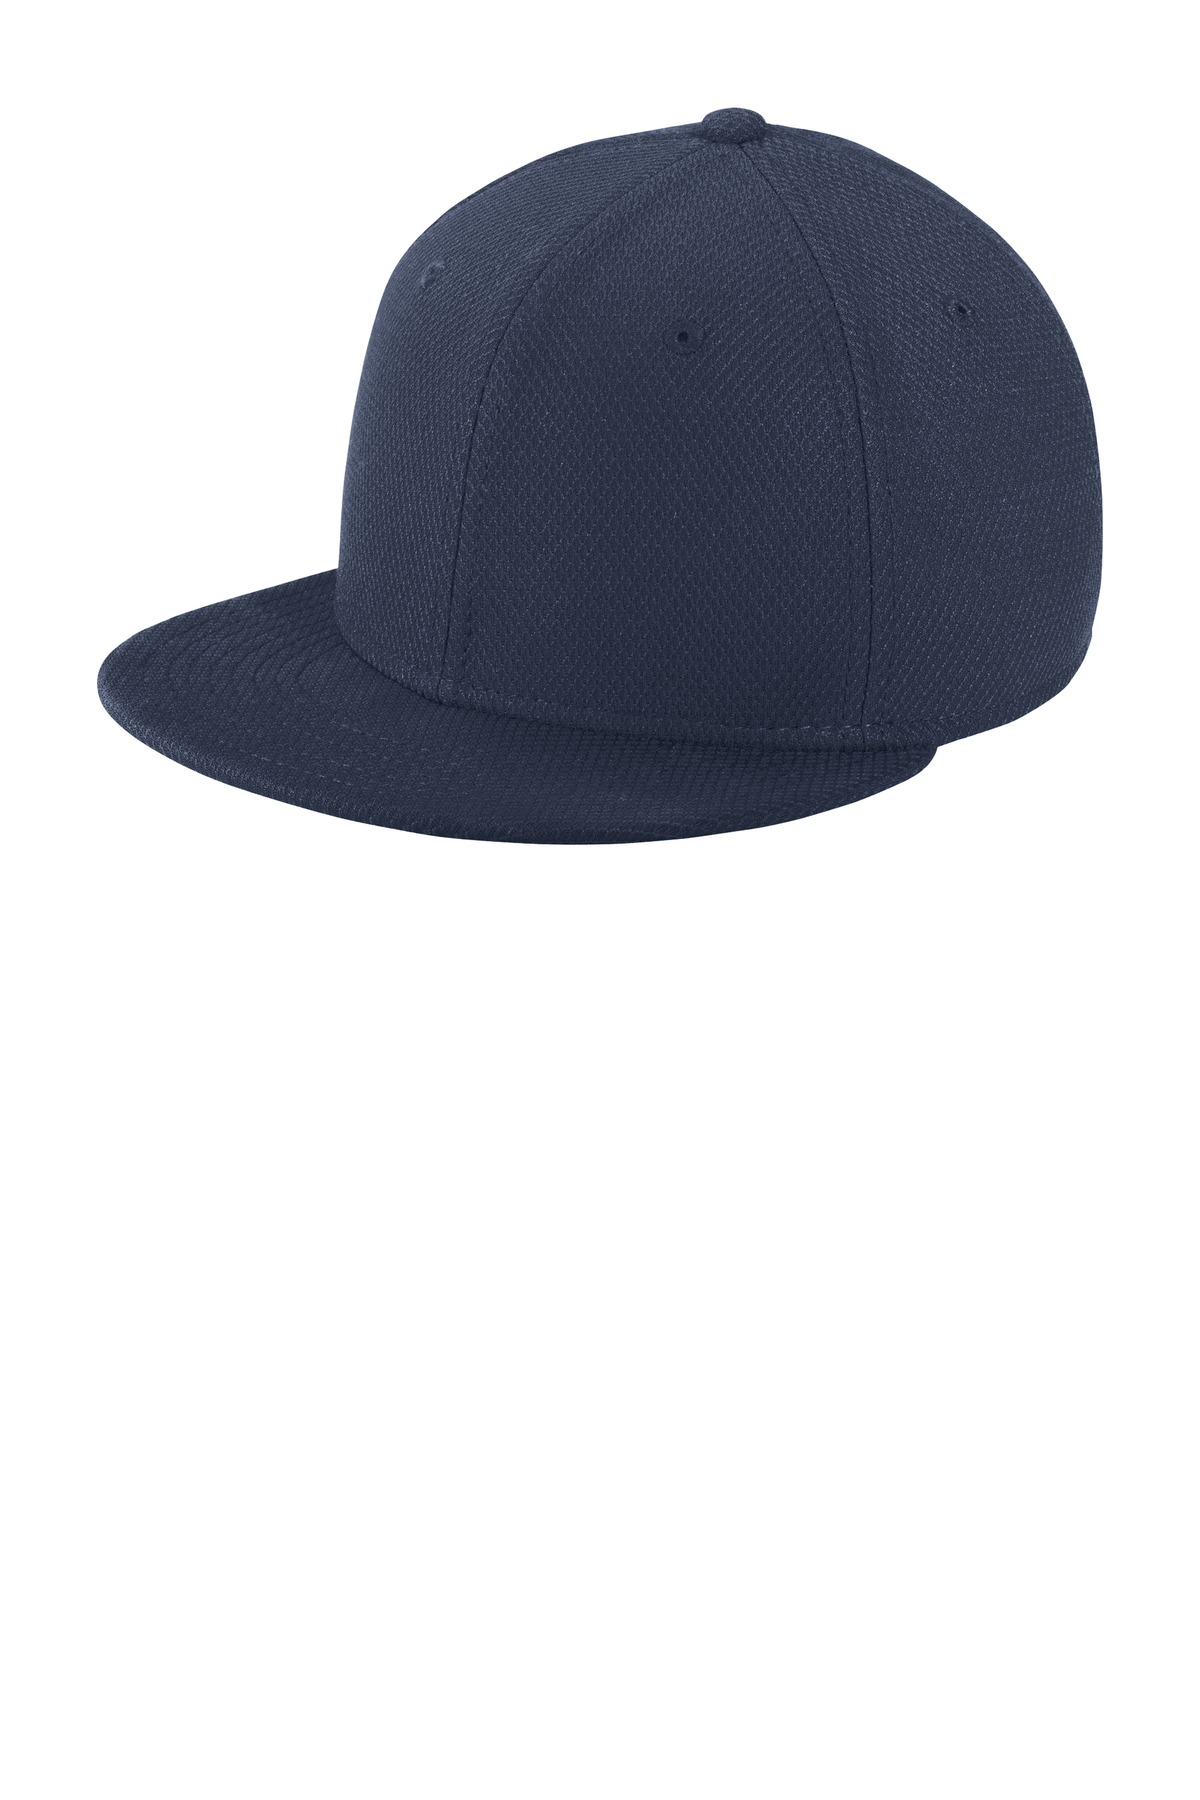 New Era  ®  Youth Original Fit Diamond Era Flat Bill Snapback Cap. NE304 - True Navy